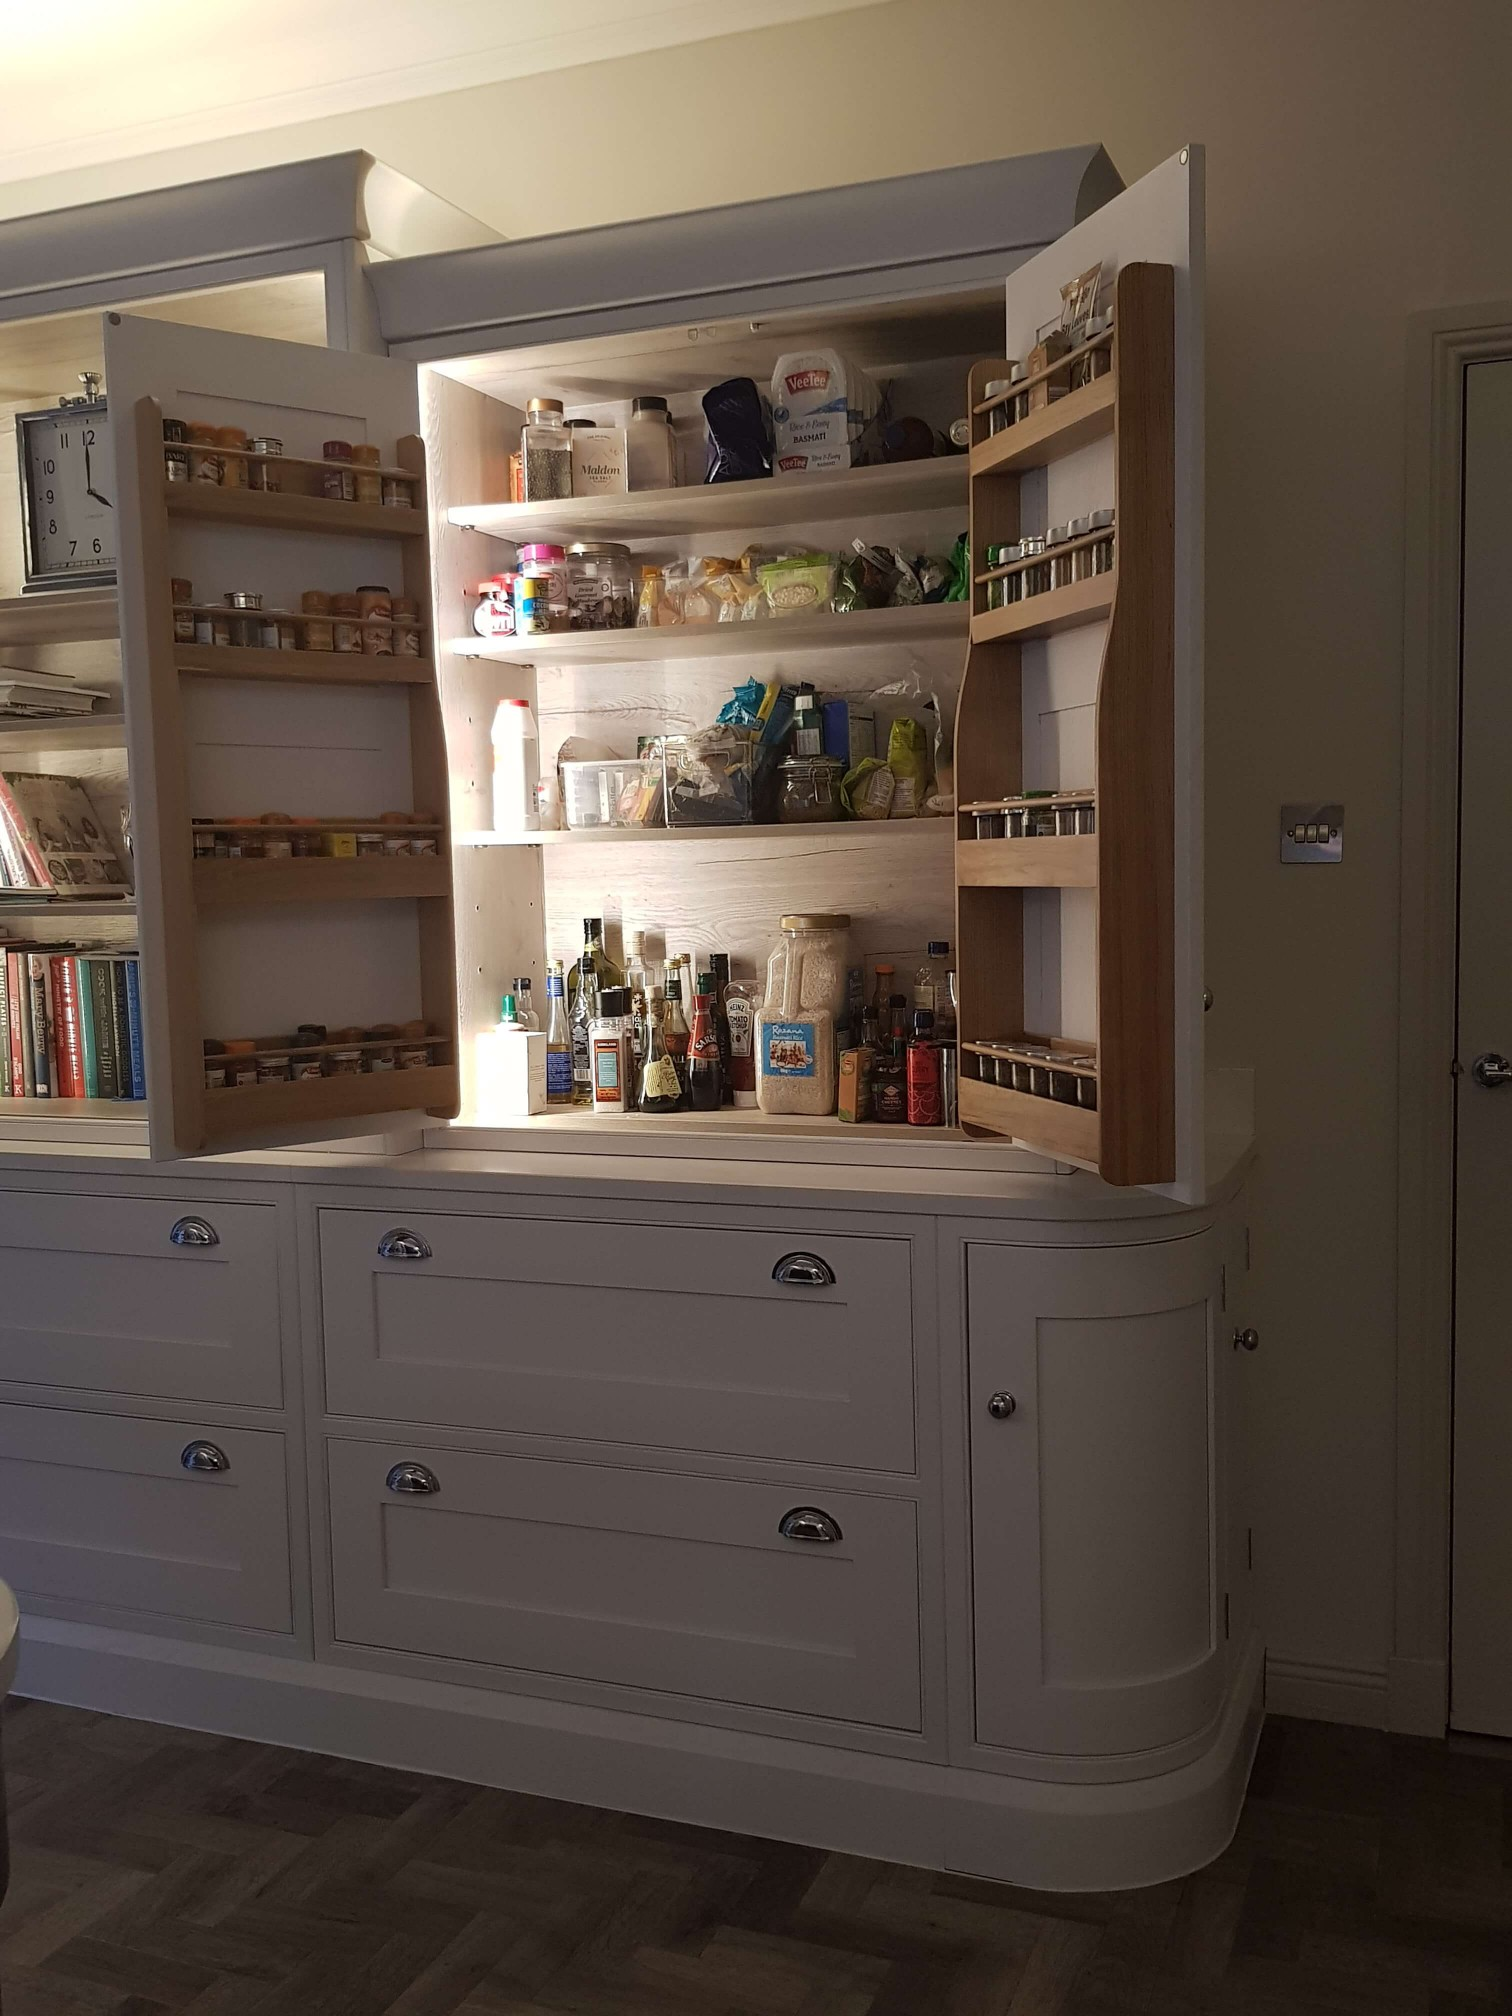 Bespoke Inframe Kitchen Storage Glasgow